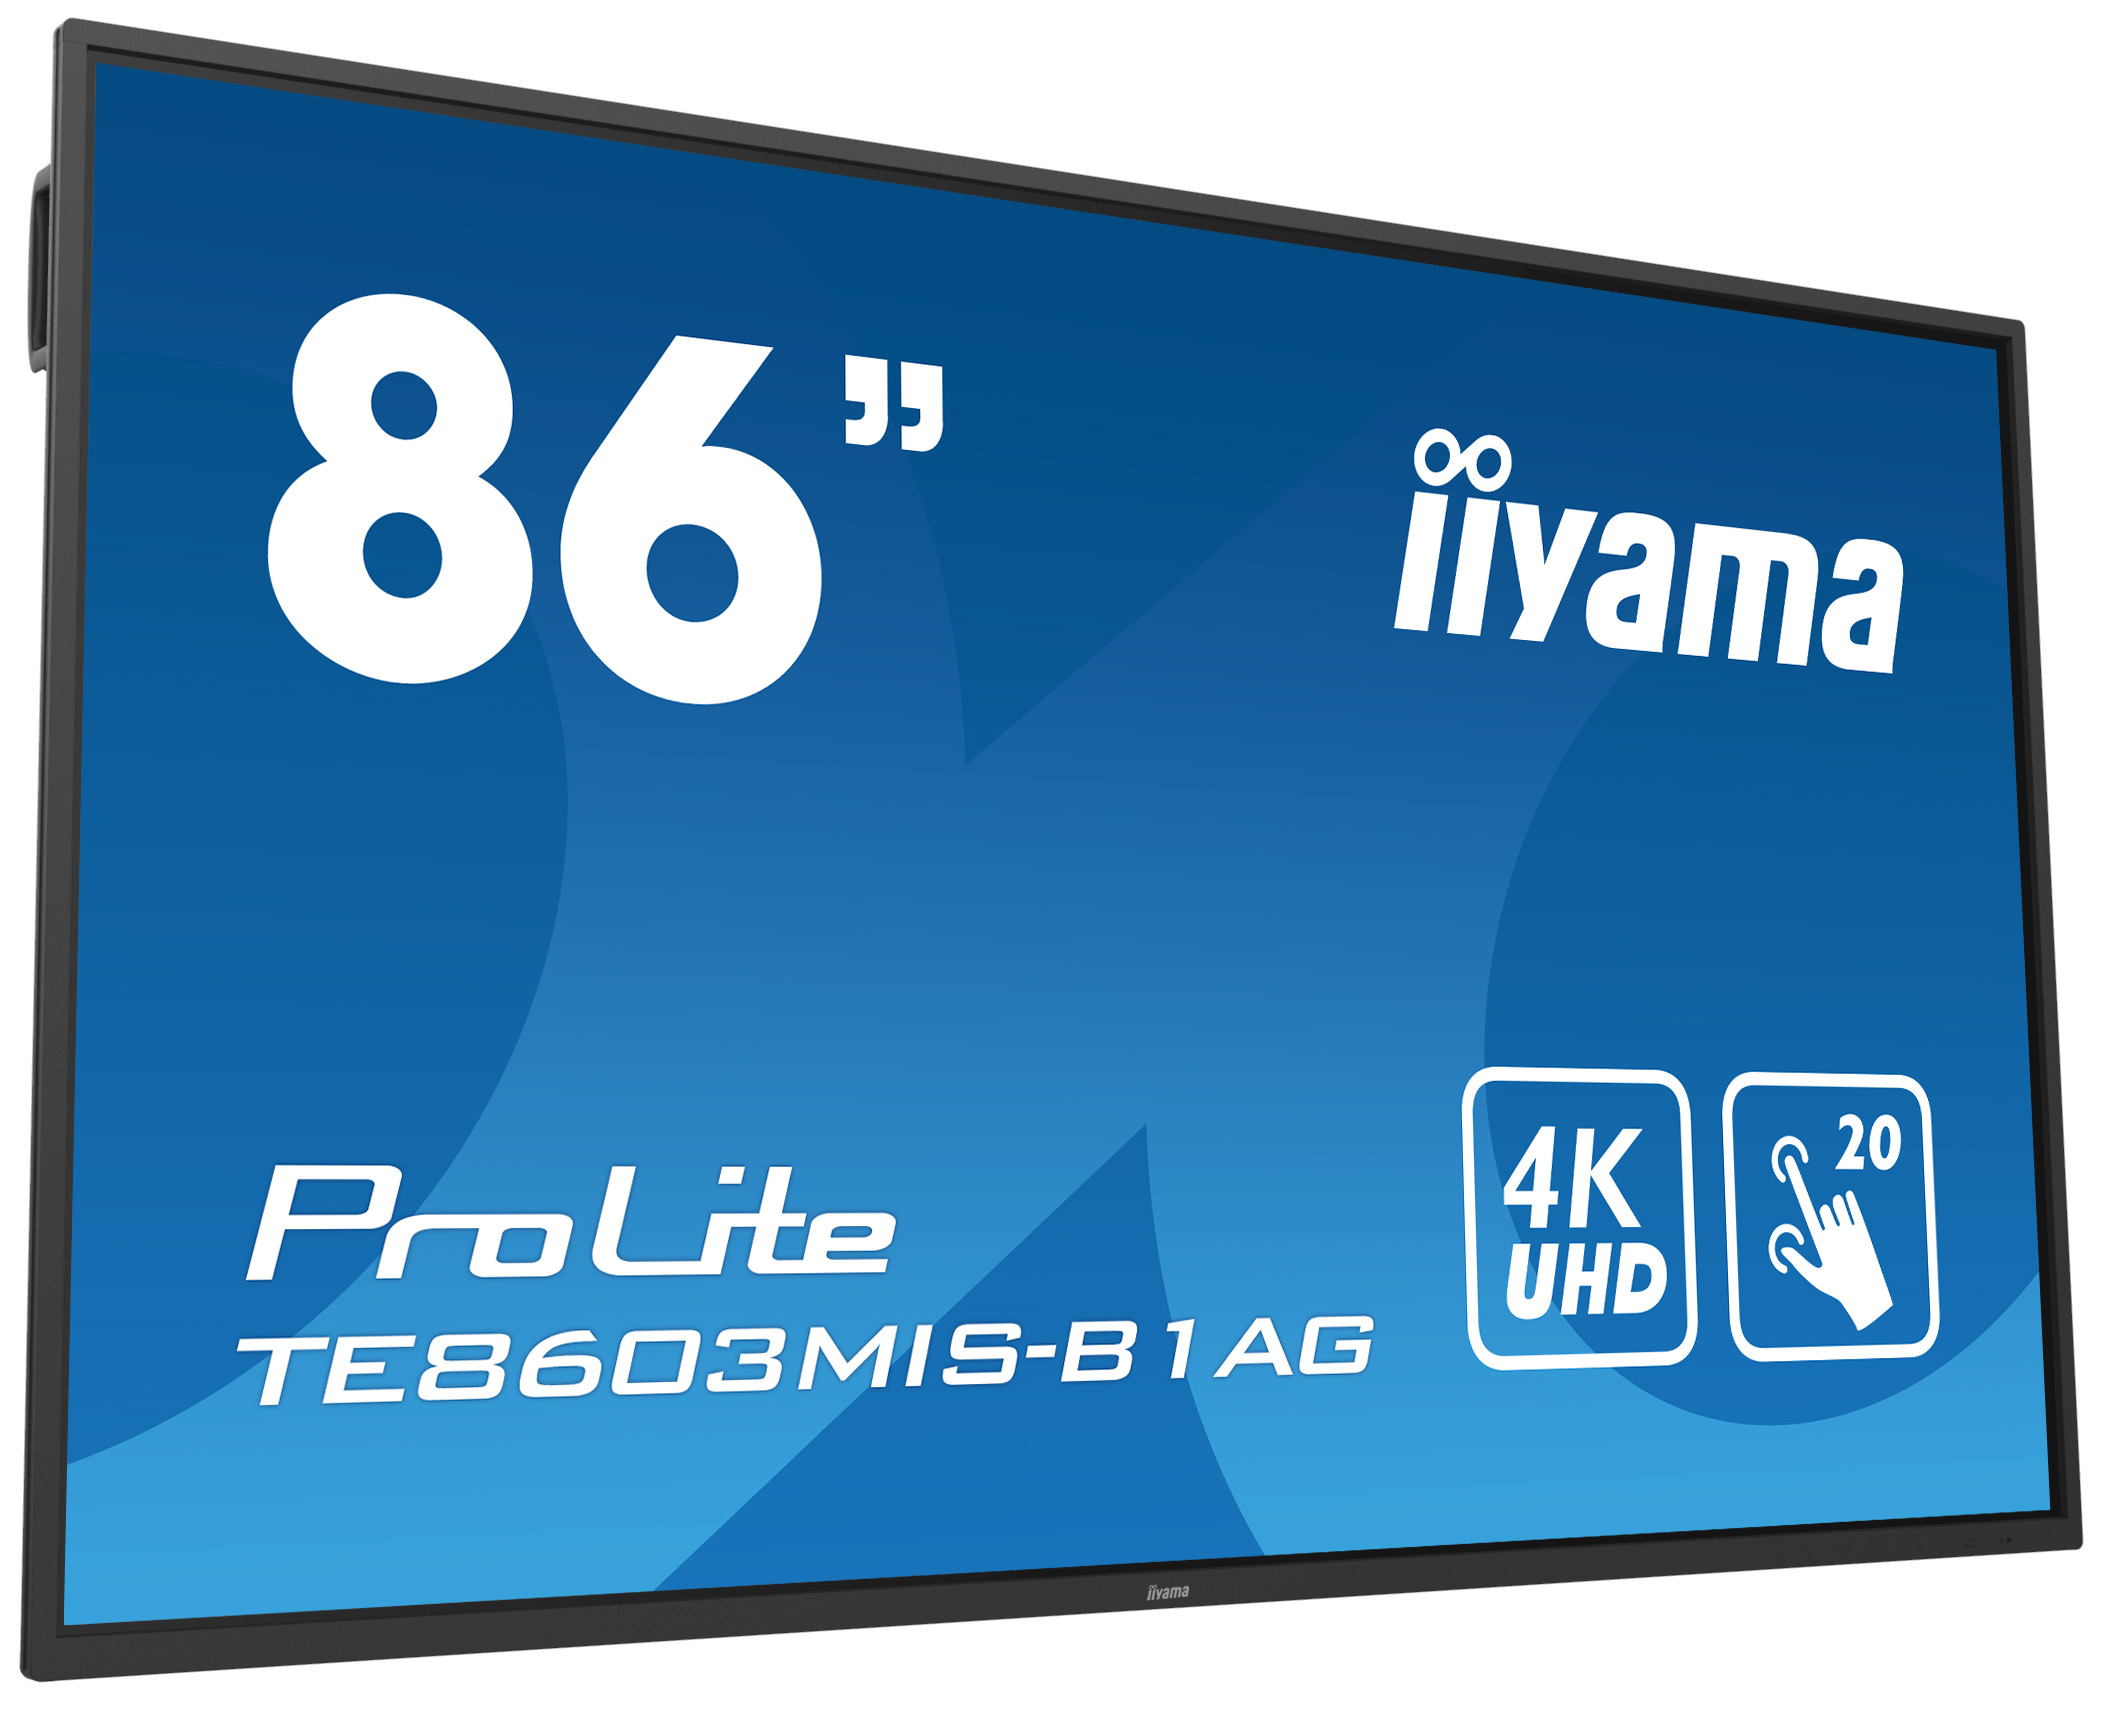 Iiyama Prolite Te8603mis B1ag 86 Interactive 4k Uhd Lcd Touchscreen With Integrated Annotation Software